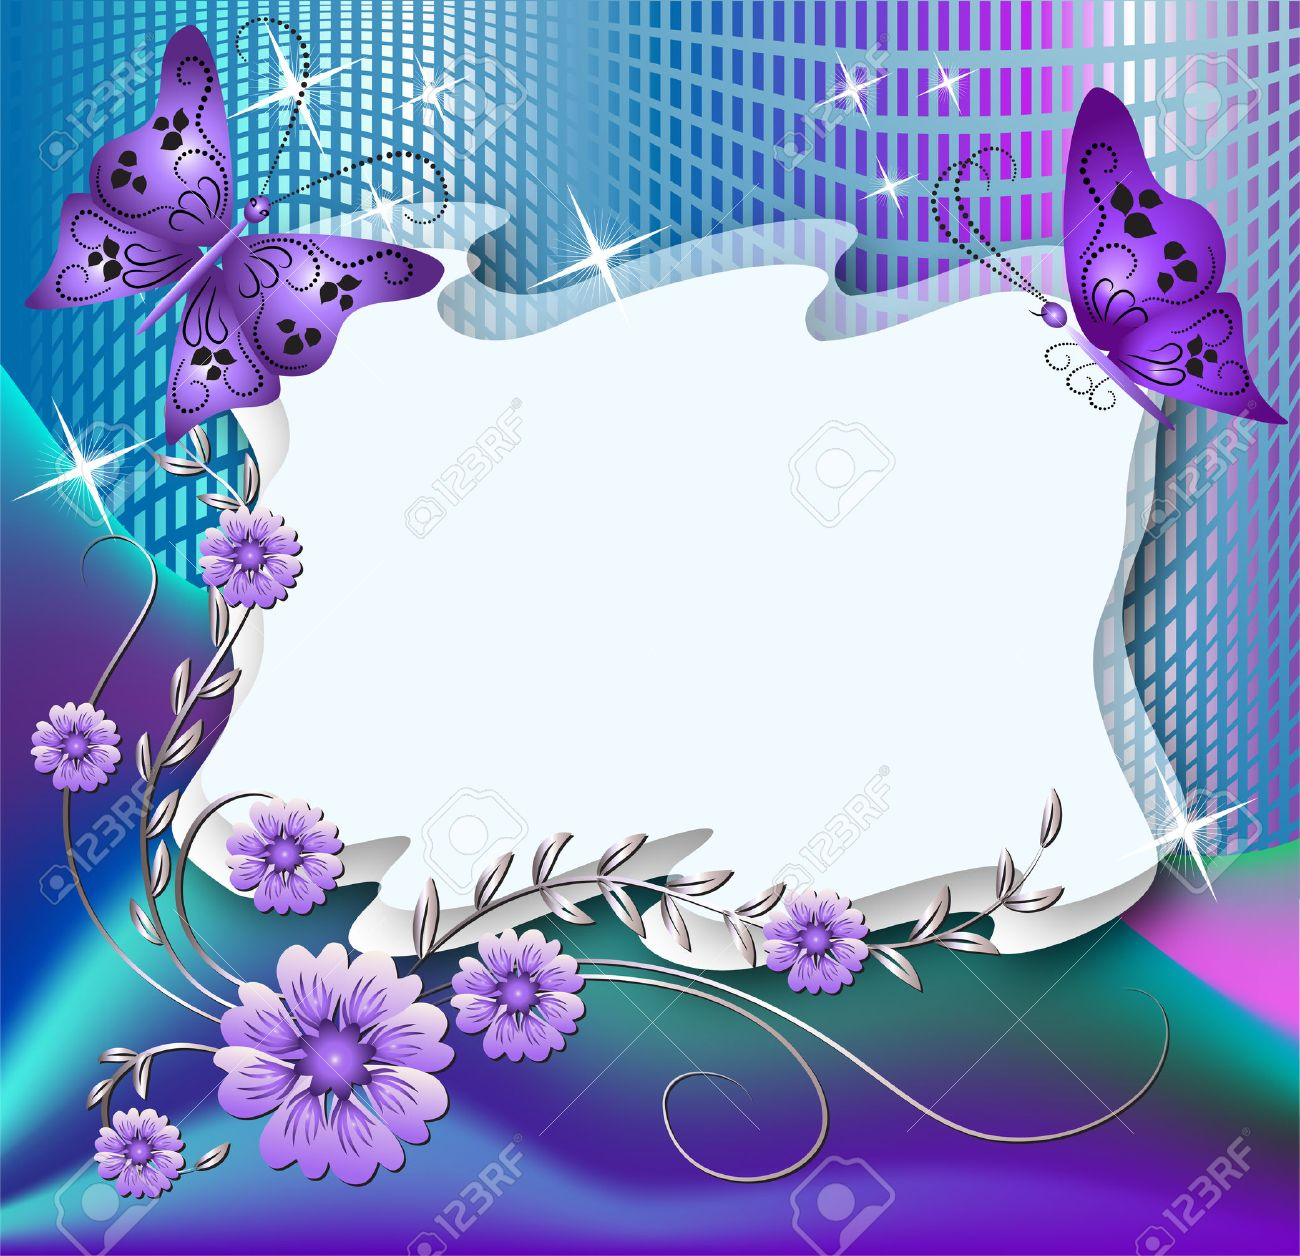 Magic floral background with butterflies and a place for text or photo Stock Vector - 8011754